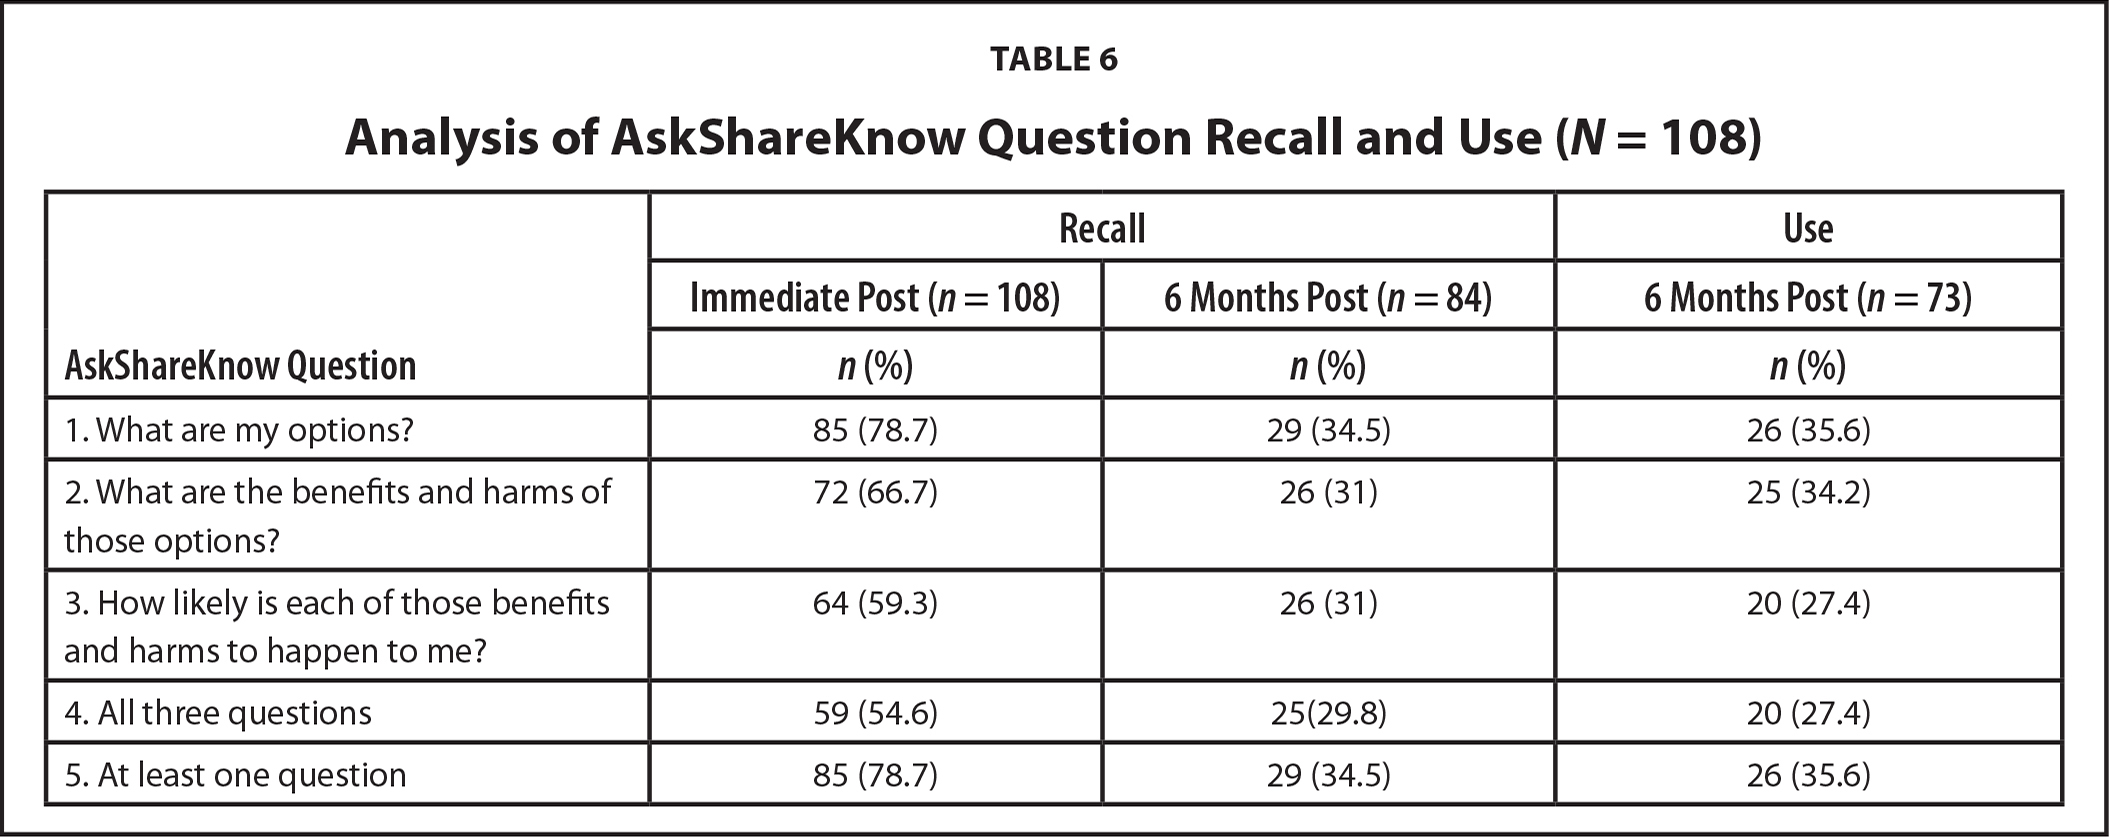 Analysis of AskShareKnow Question Recall and Use (N = 108)